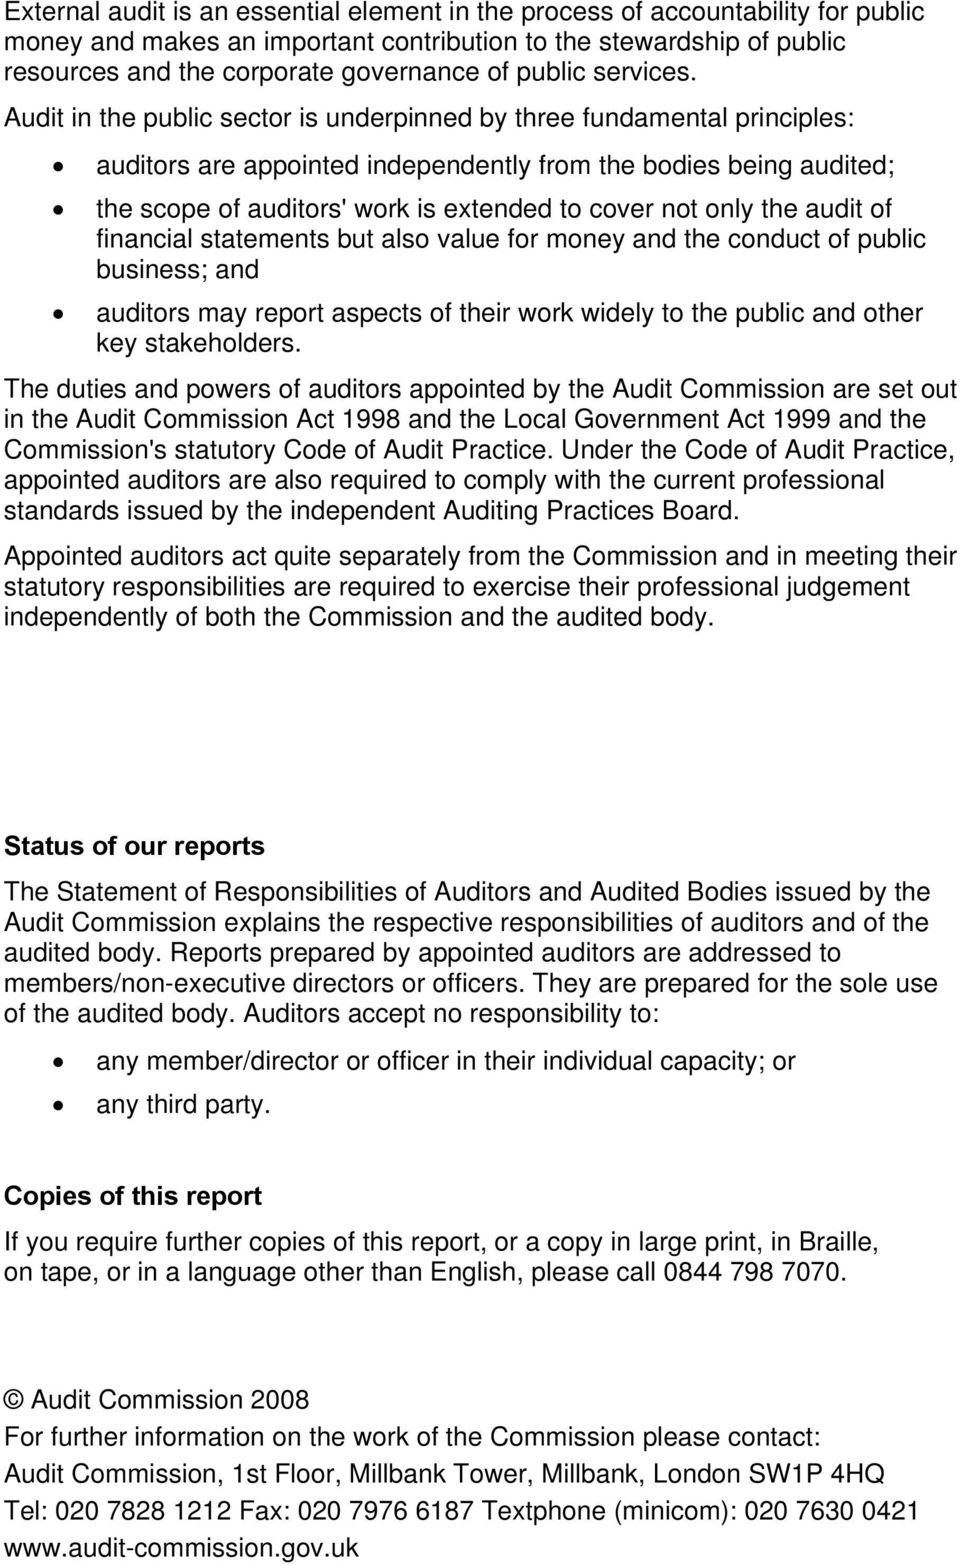 Audit in the public sector is underpinned by three fundamental principles: auditors are appointed independently from the bodies being audited; the scope of auditors' work is extended to cover not